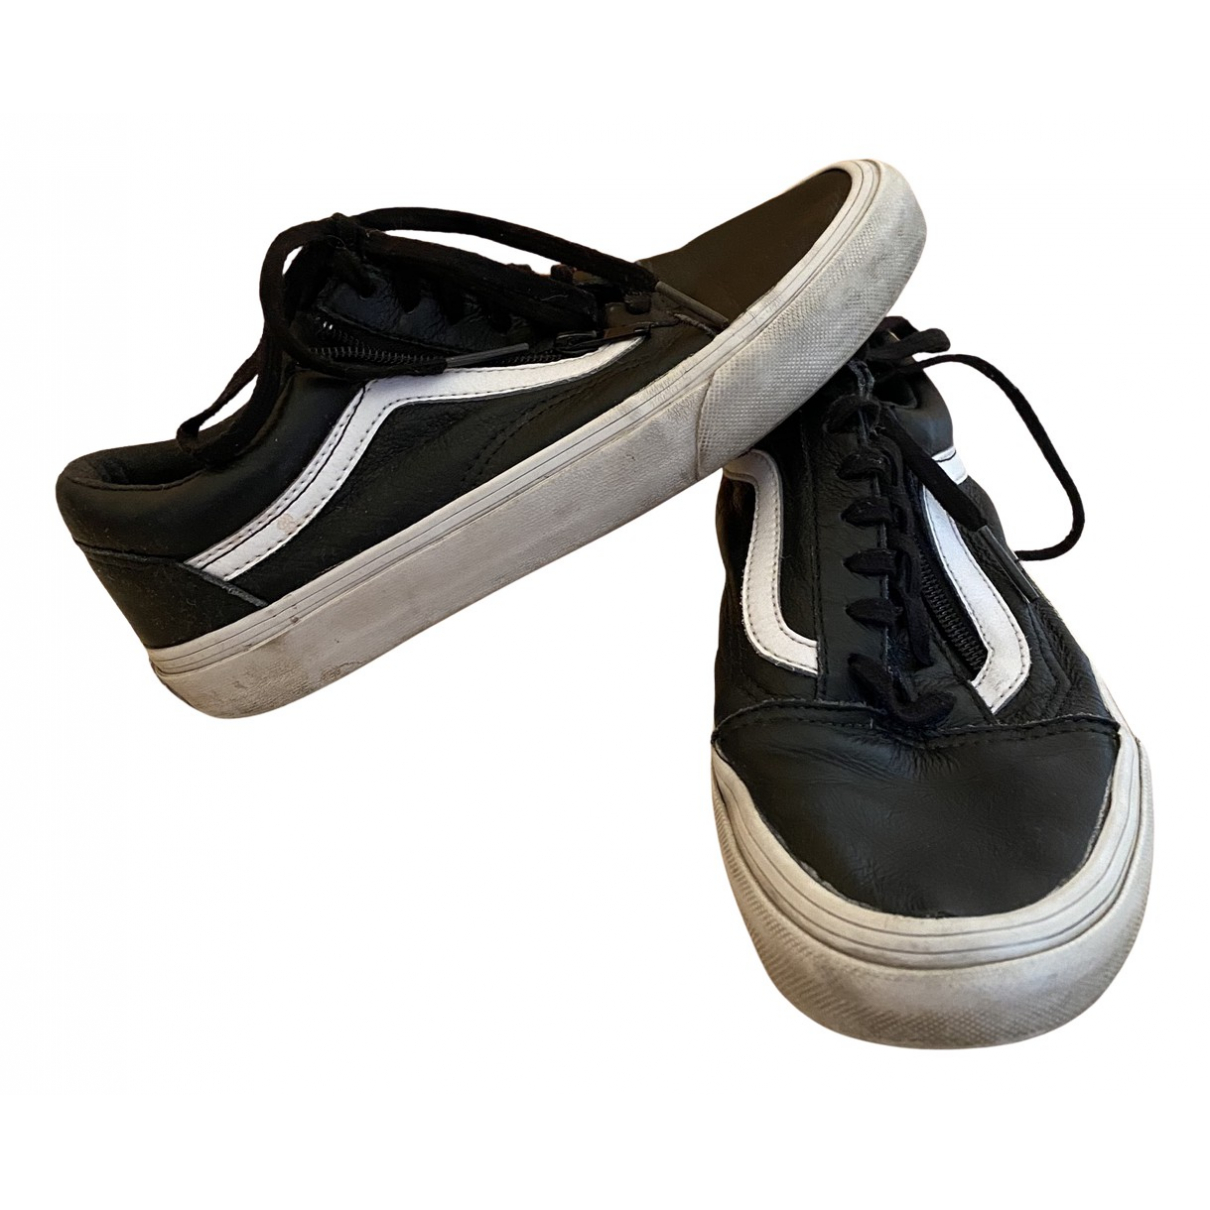 Vans N Black Leather Trainers for Women 38 EU